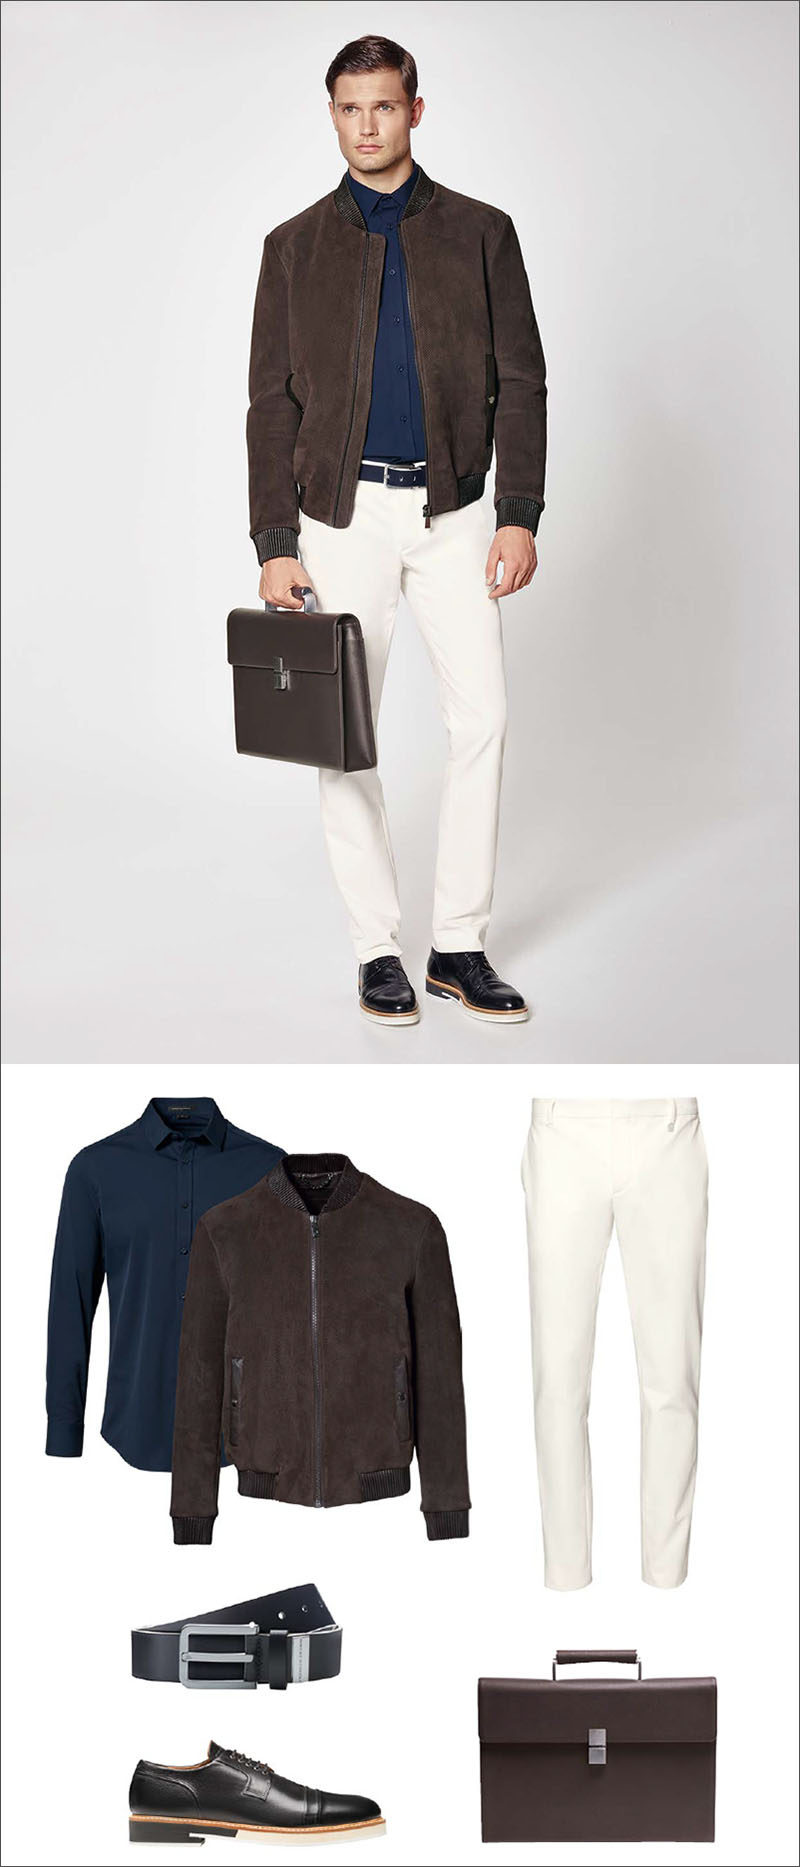 Men S Fashion Ideas 17 Men S Outfits From Porsche Design